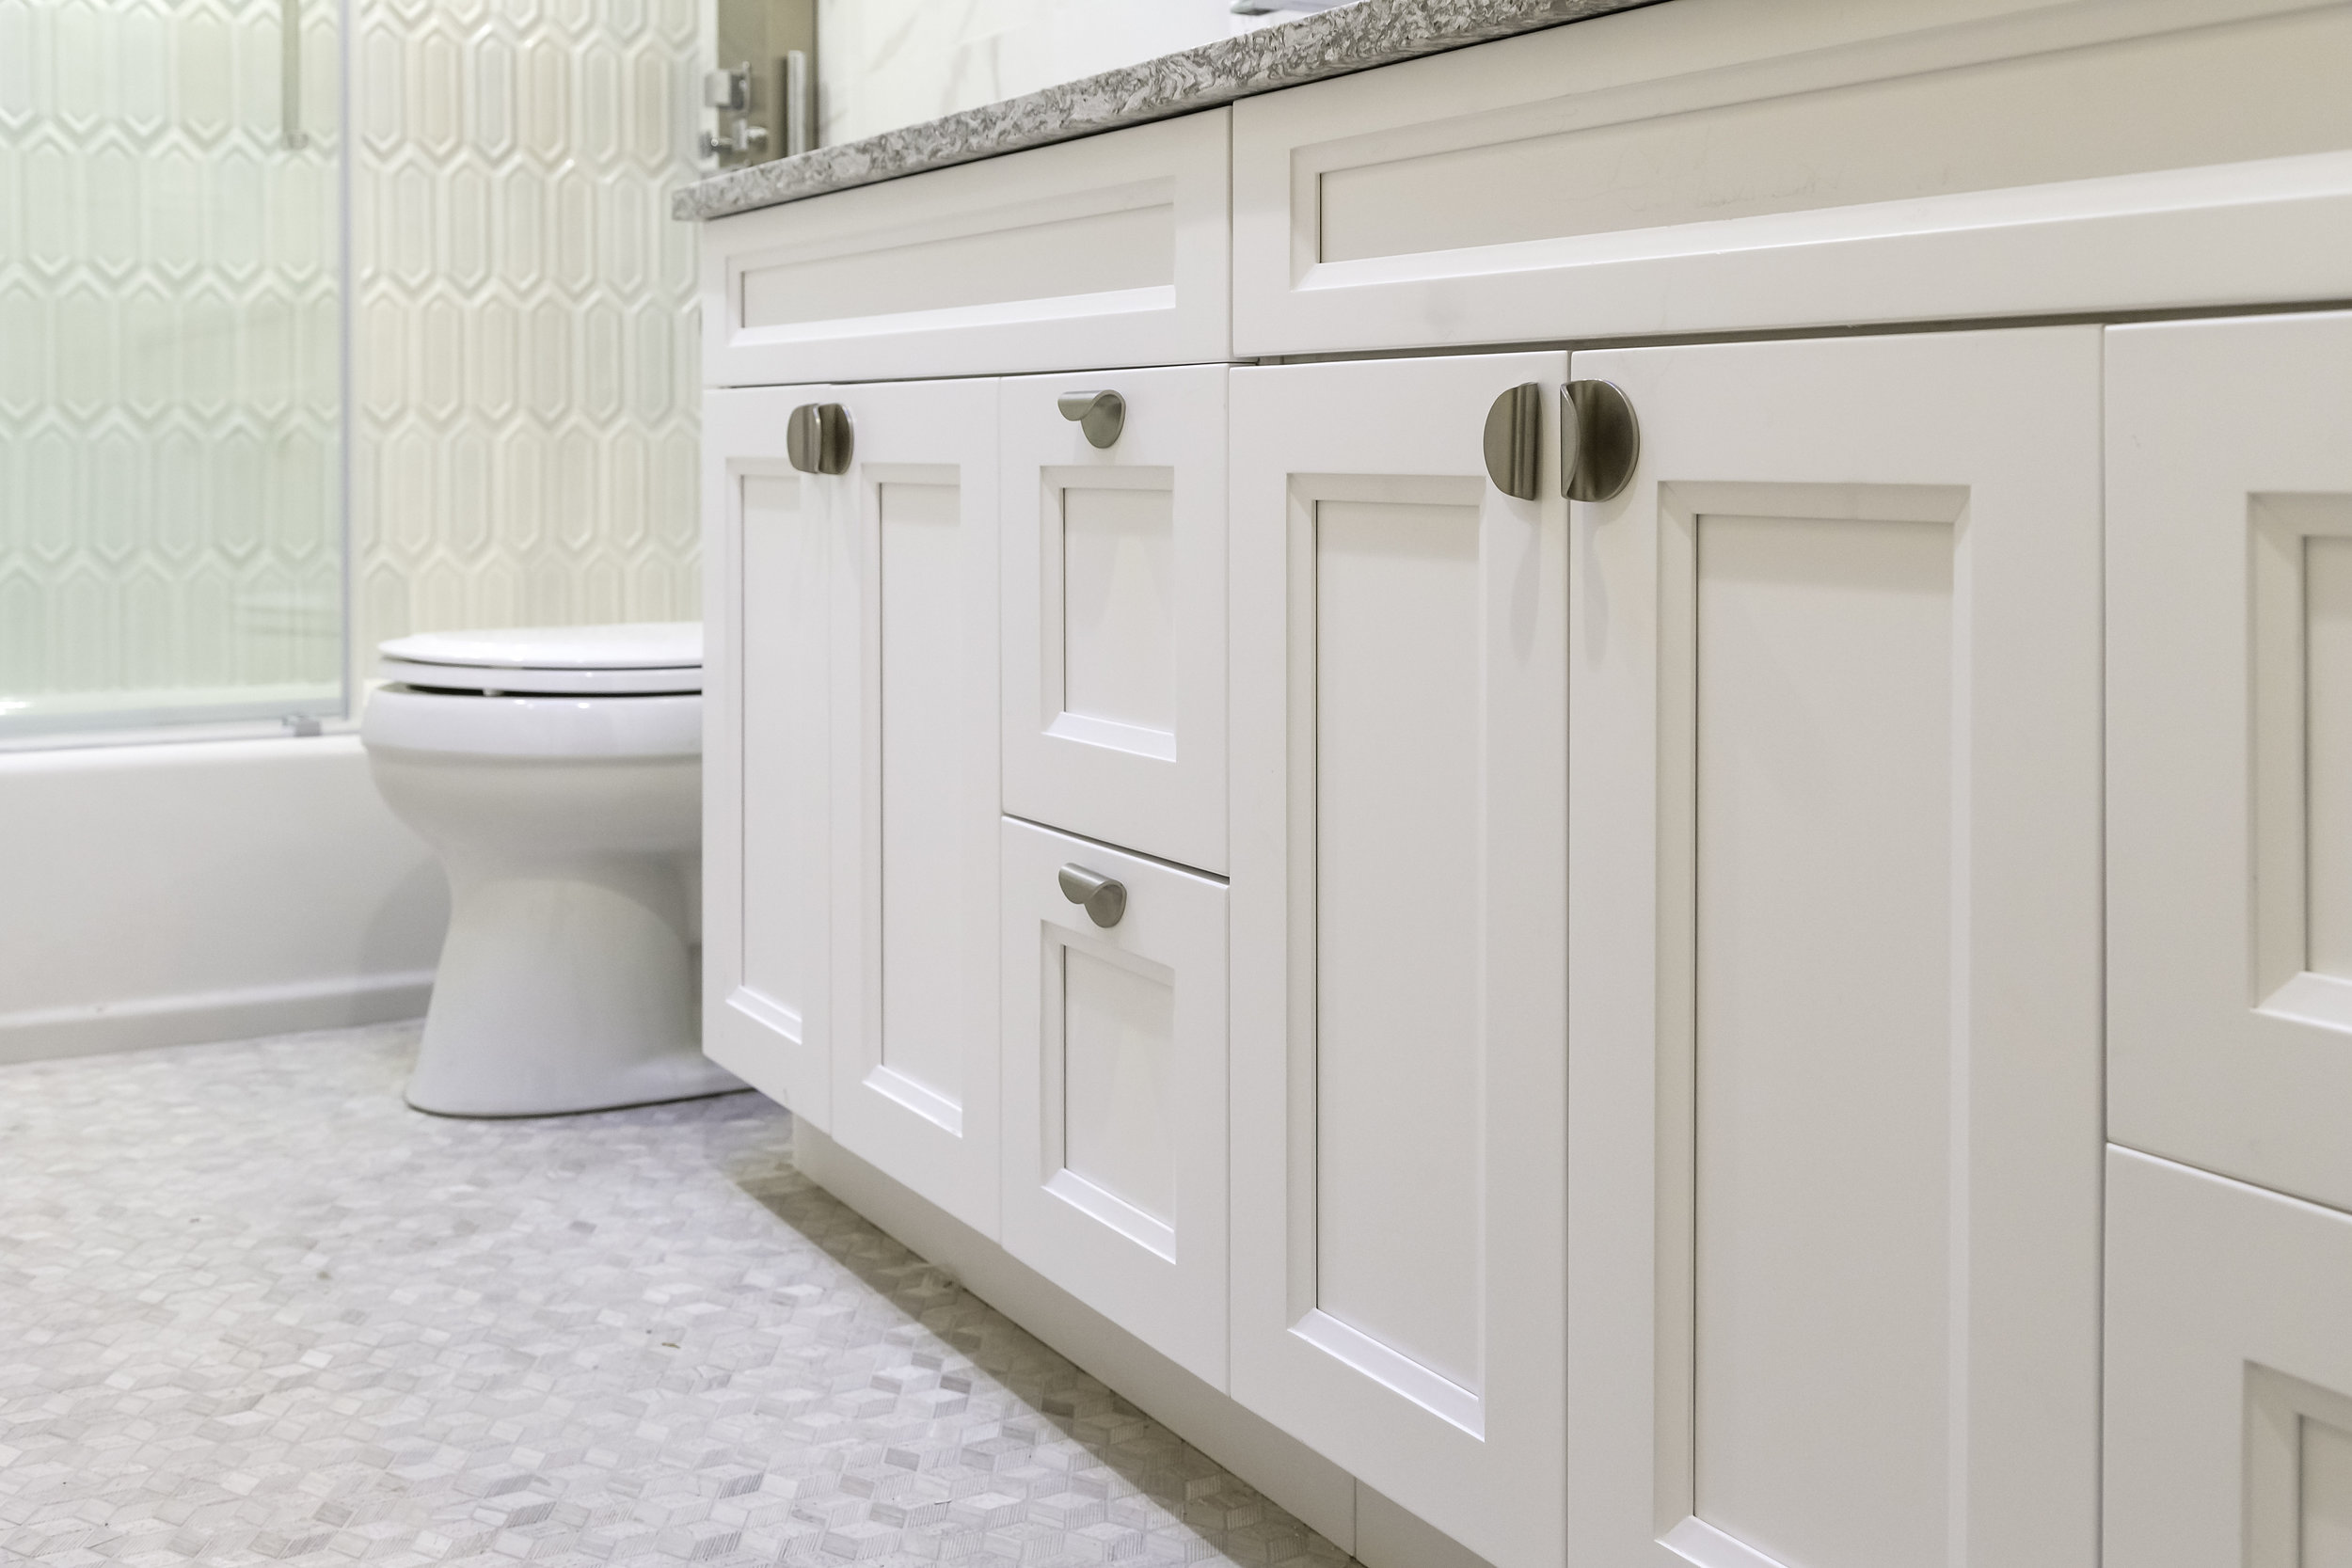 Bright bathroom with white cabinets and tiled floor